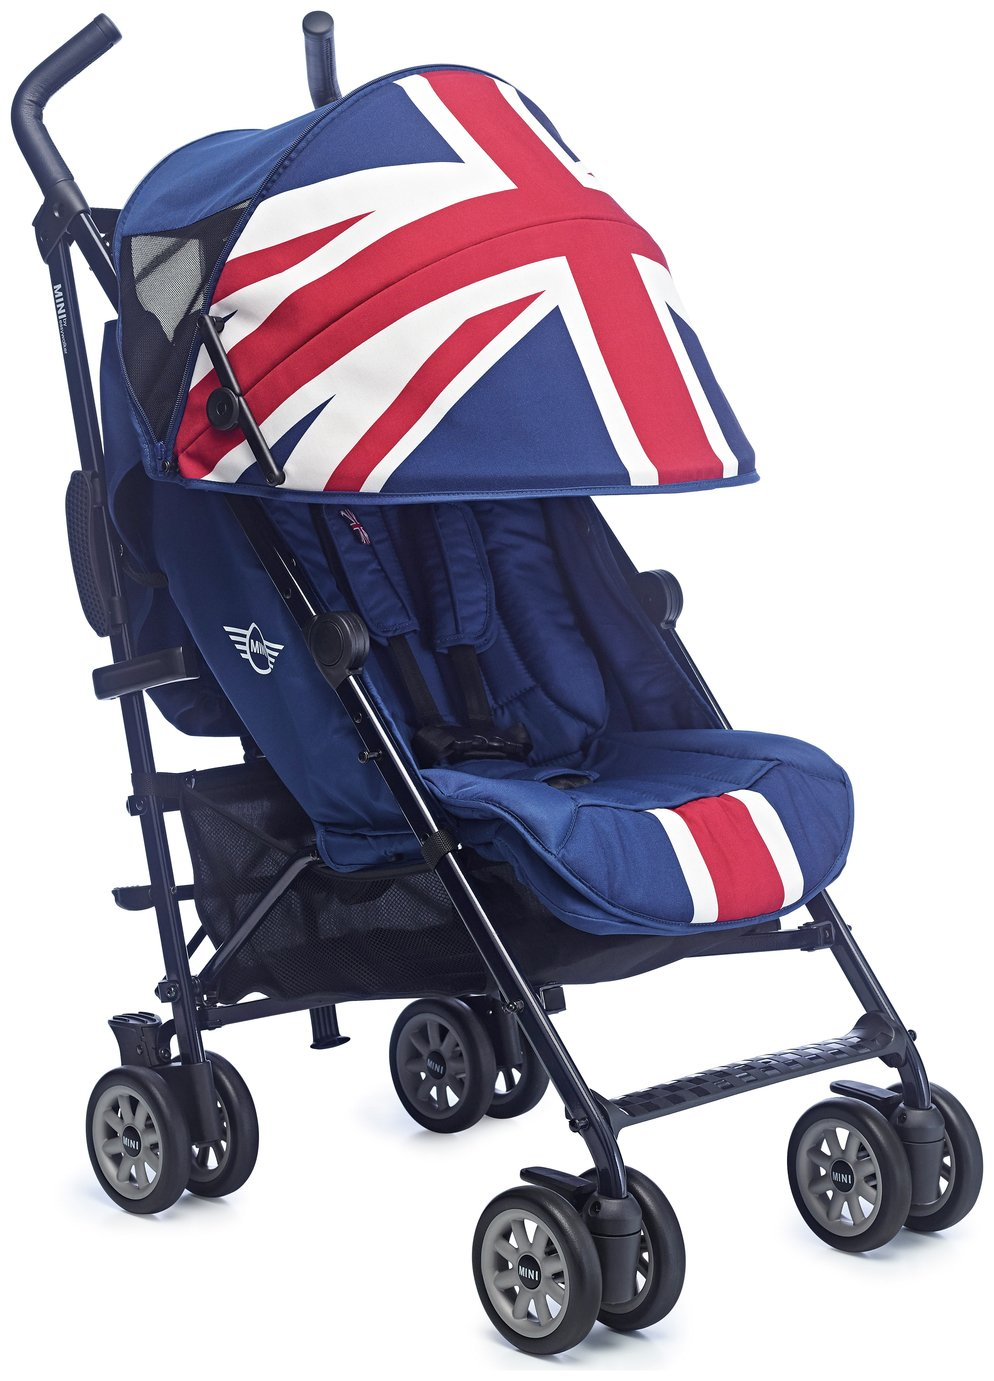 MINI by Easywalker Buggy - Union Jack